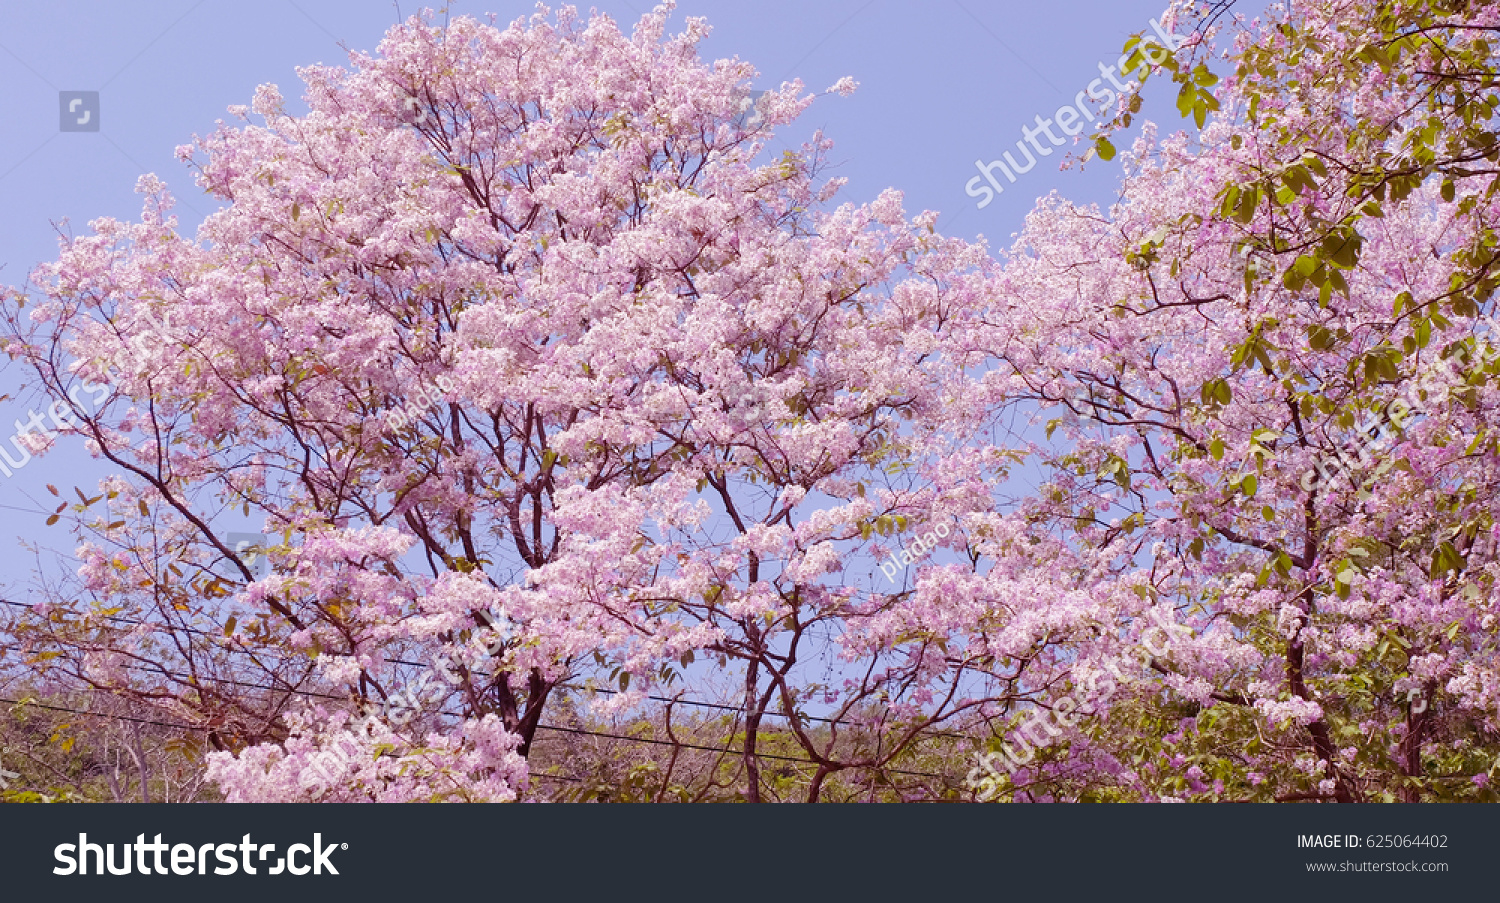 Beautiful Almond Blossoms Blooming Trees Pink Stock Photo Royalty